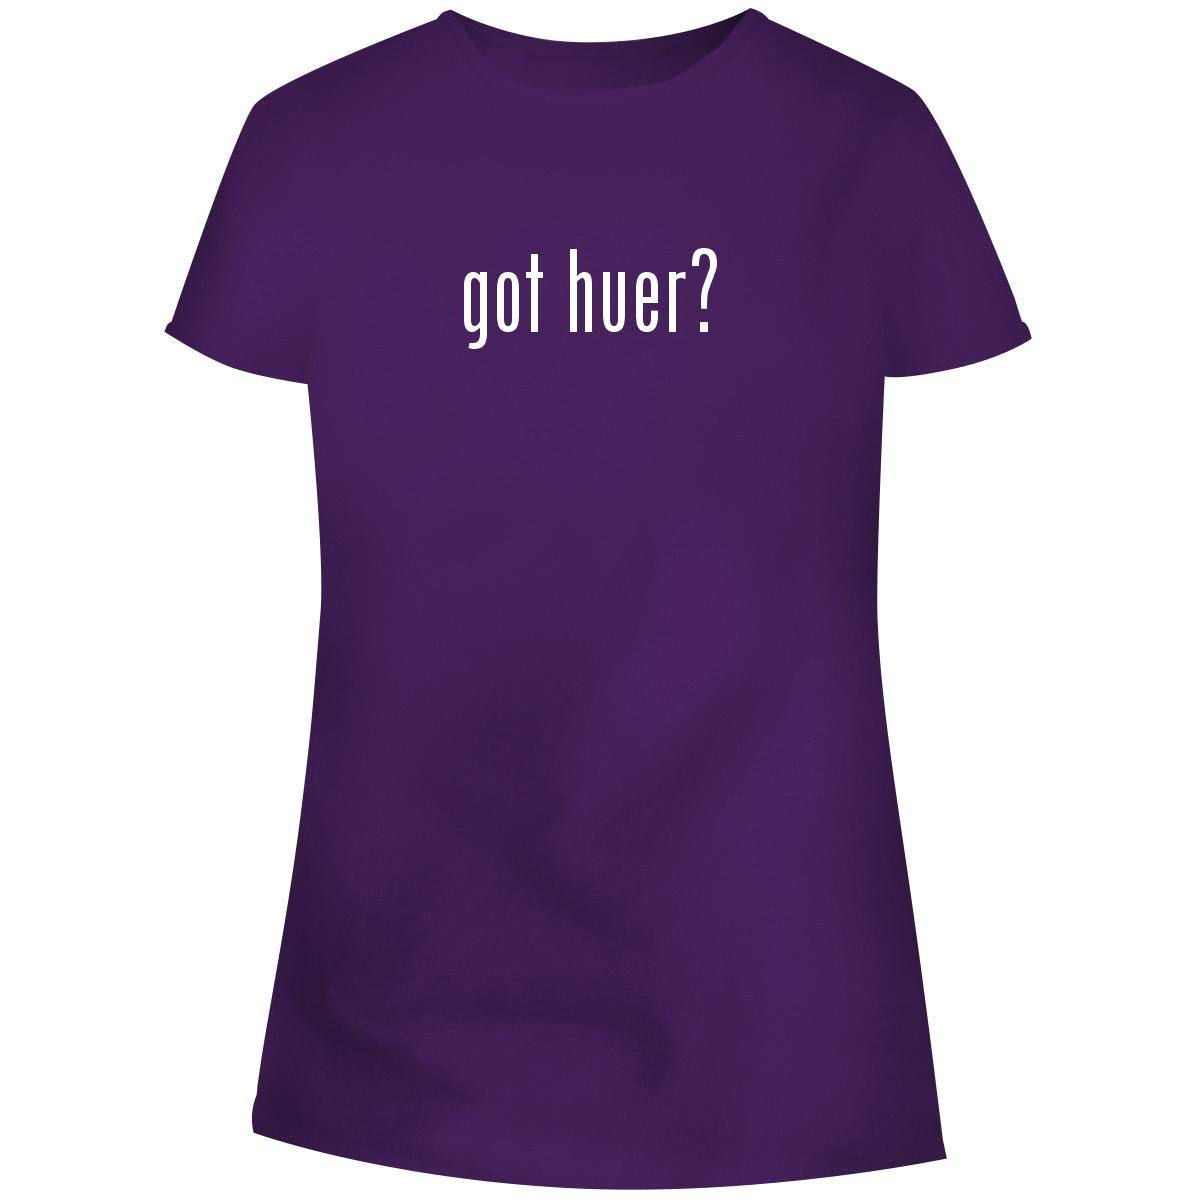 One Legging it Around got Huer? - Women's Soft Junior Cut Adult Tee T-Shirt, Purple, Medium